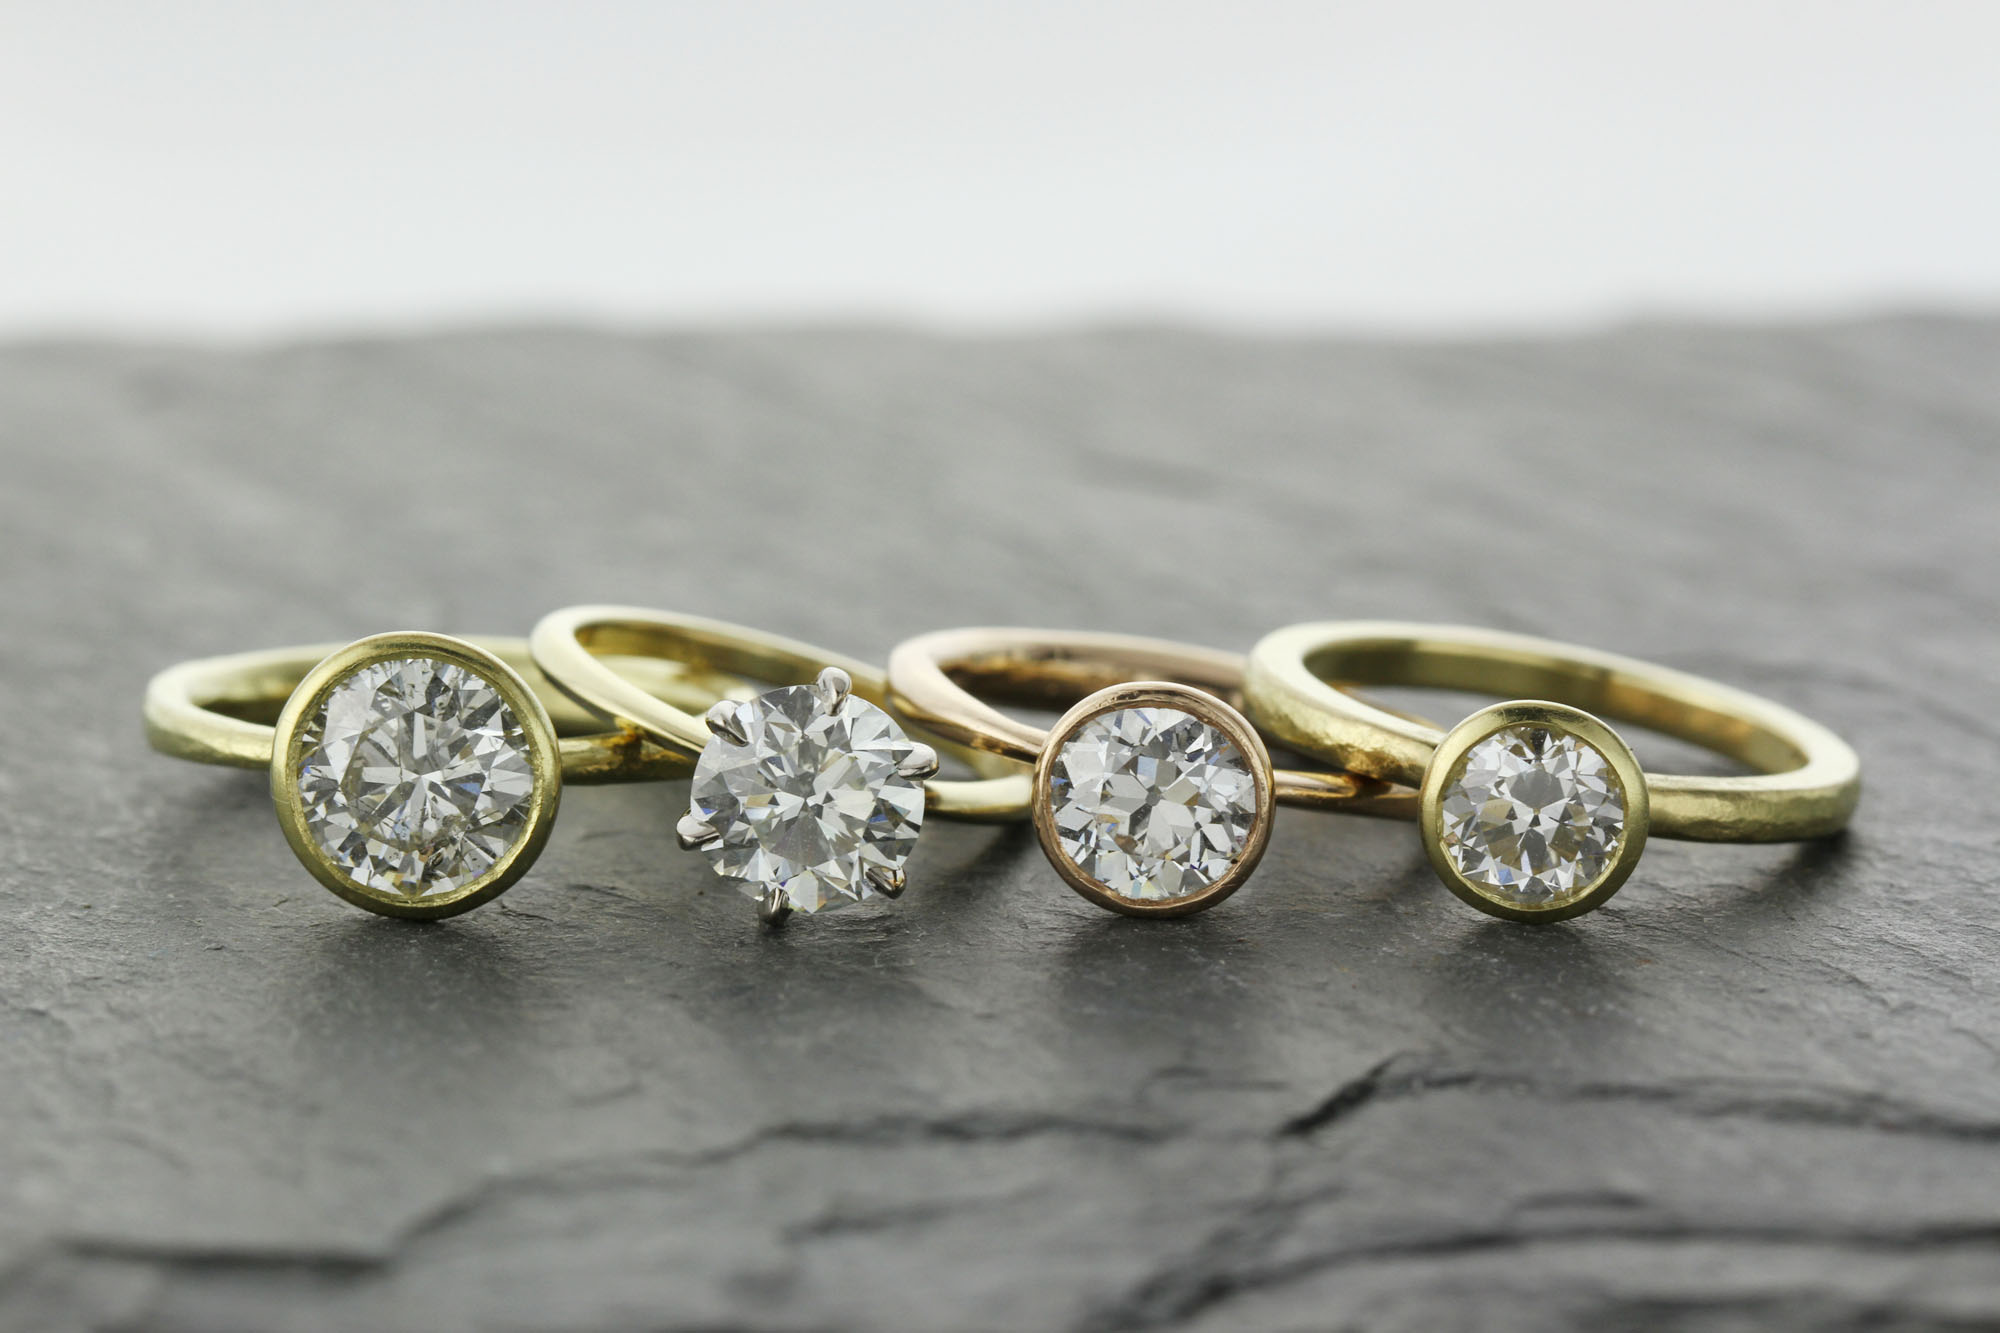 Sophie Hughes Handcrafted Ethical Engagement Rings with Ethical Antique Diamonds - Sophie Hughes.jpg